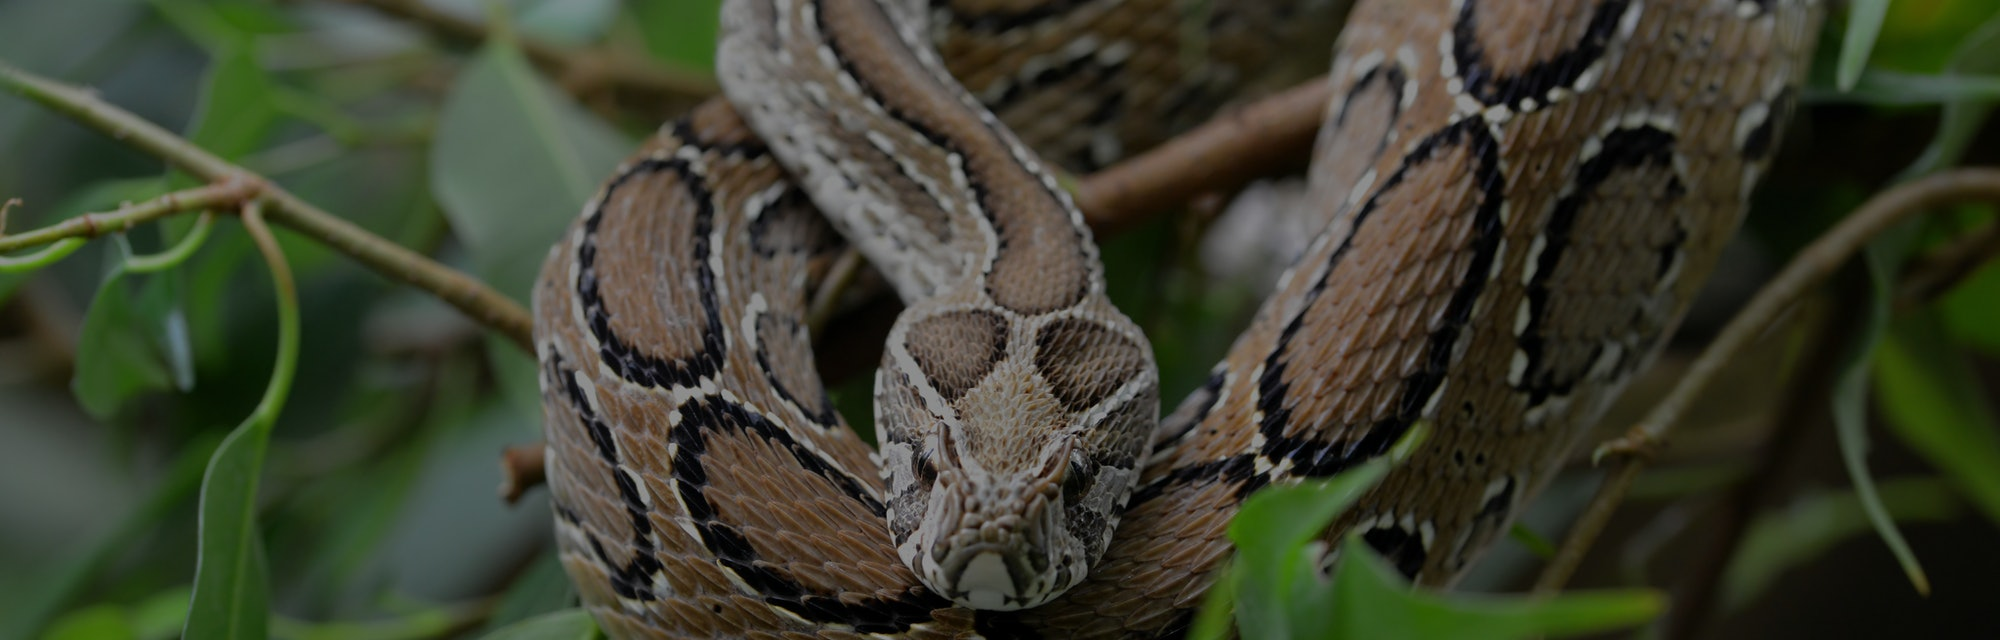 Russell's viper ( Daboia russelii ) on branch of tree. Venomous snake living in South Asia.